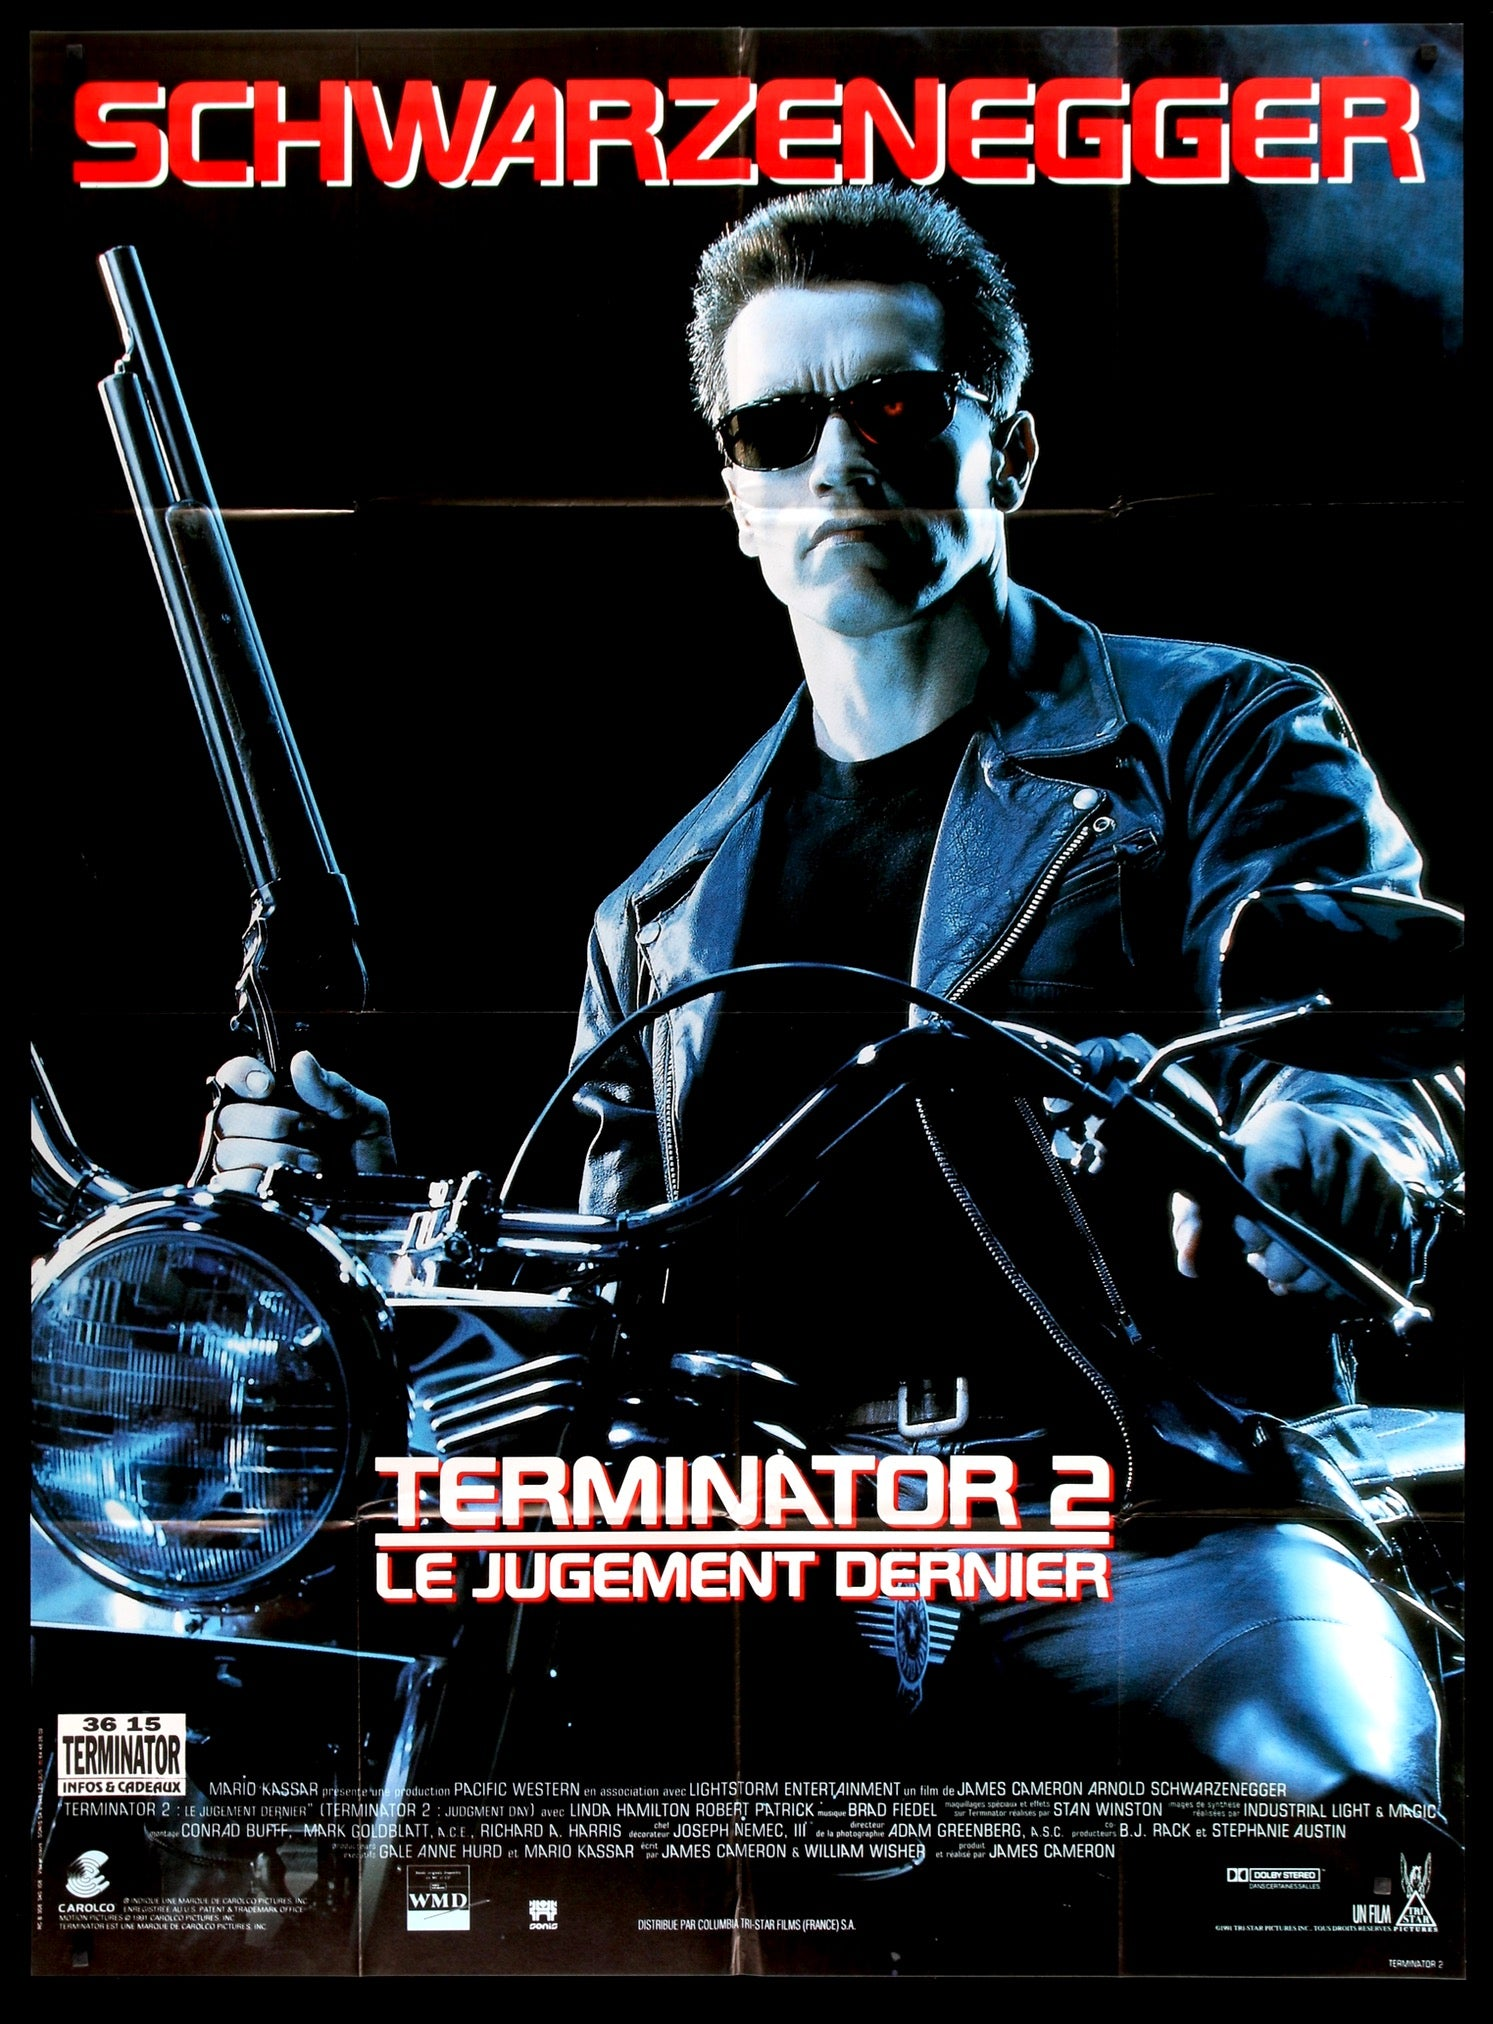 Terminator 2 Judgment Day 1991 French Movie Poster Original Film Art Vintage Movie Posters